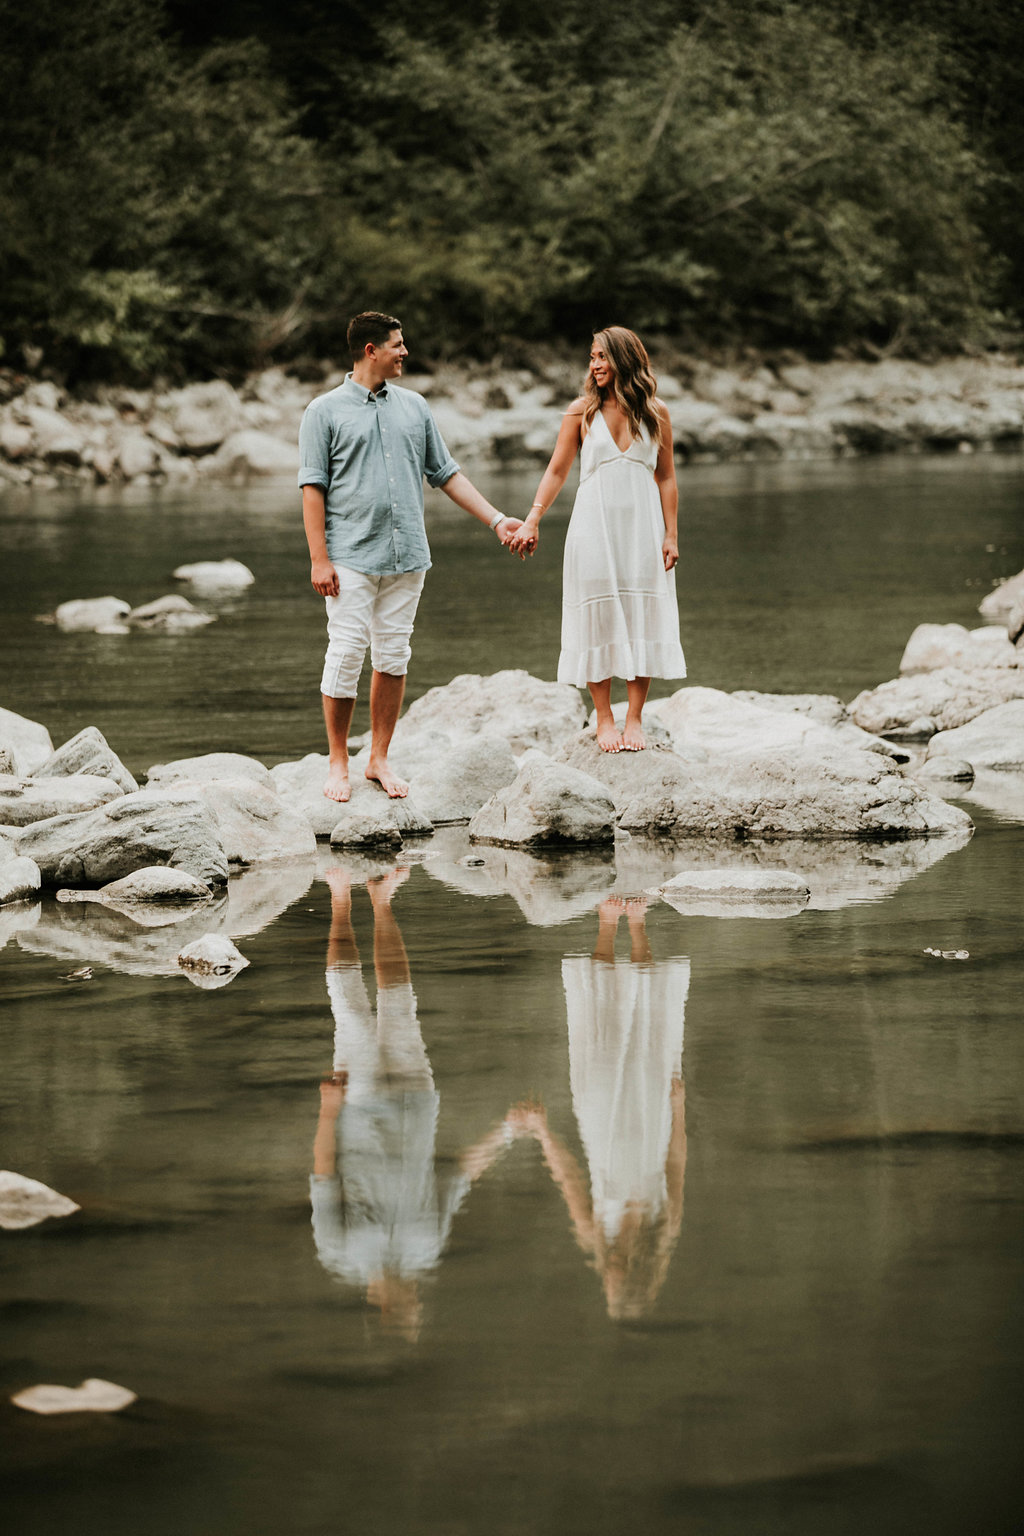 Engagement_locations_in_seattle_snoqualmie_falls_engagement_photos_by_the_river